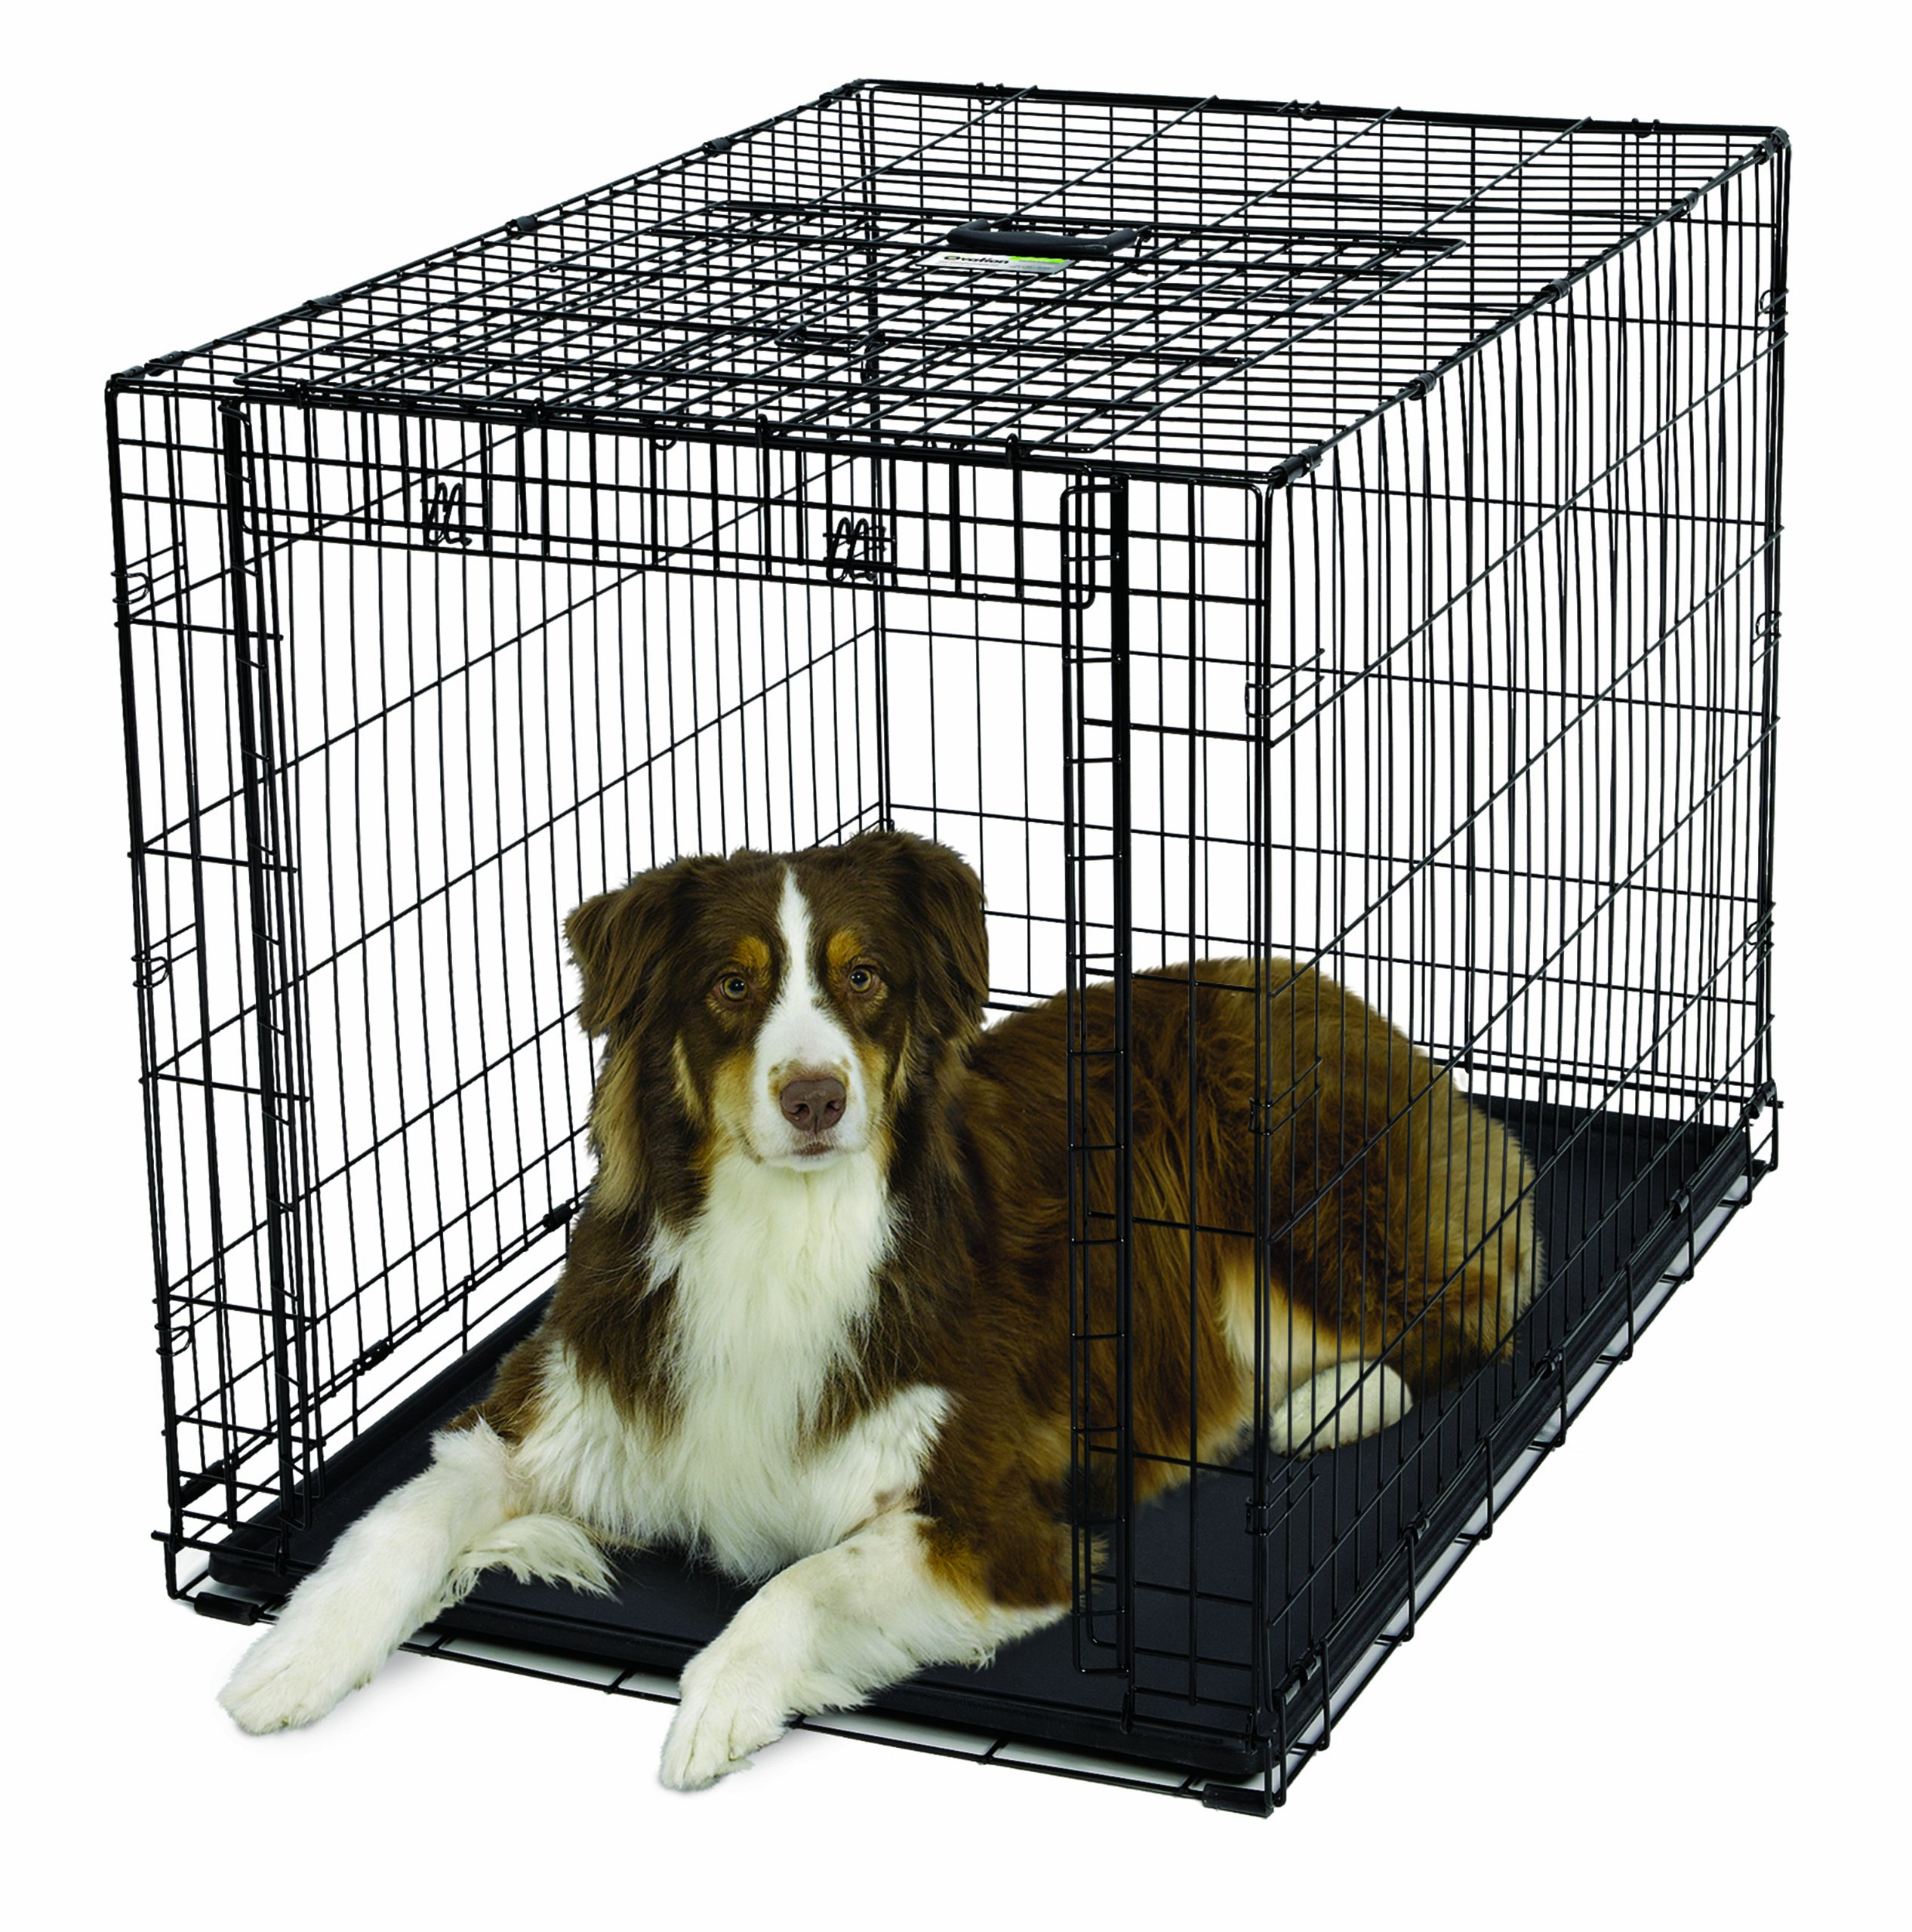 MidWest Homes for Pets Ovation Single Door Dog Crate, 42-Inch by MidWest Homes for Pets